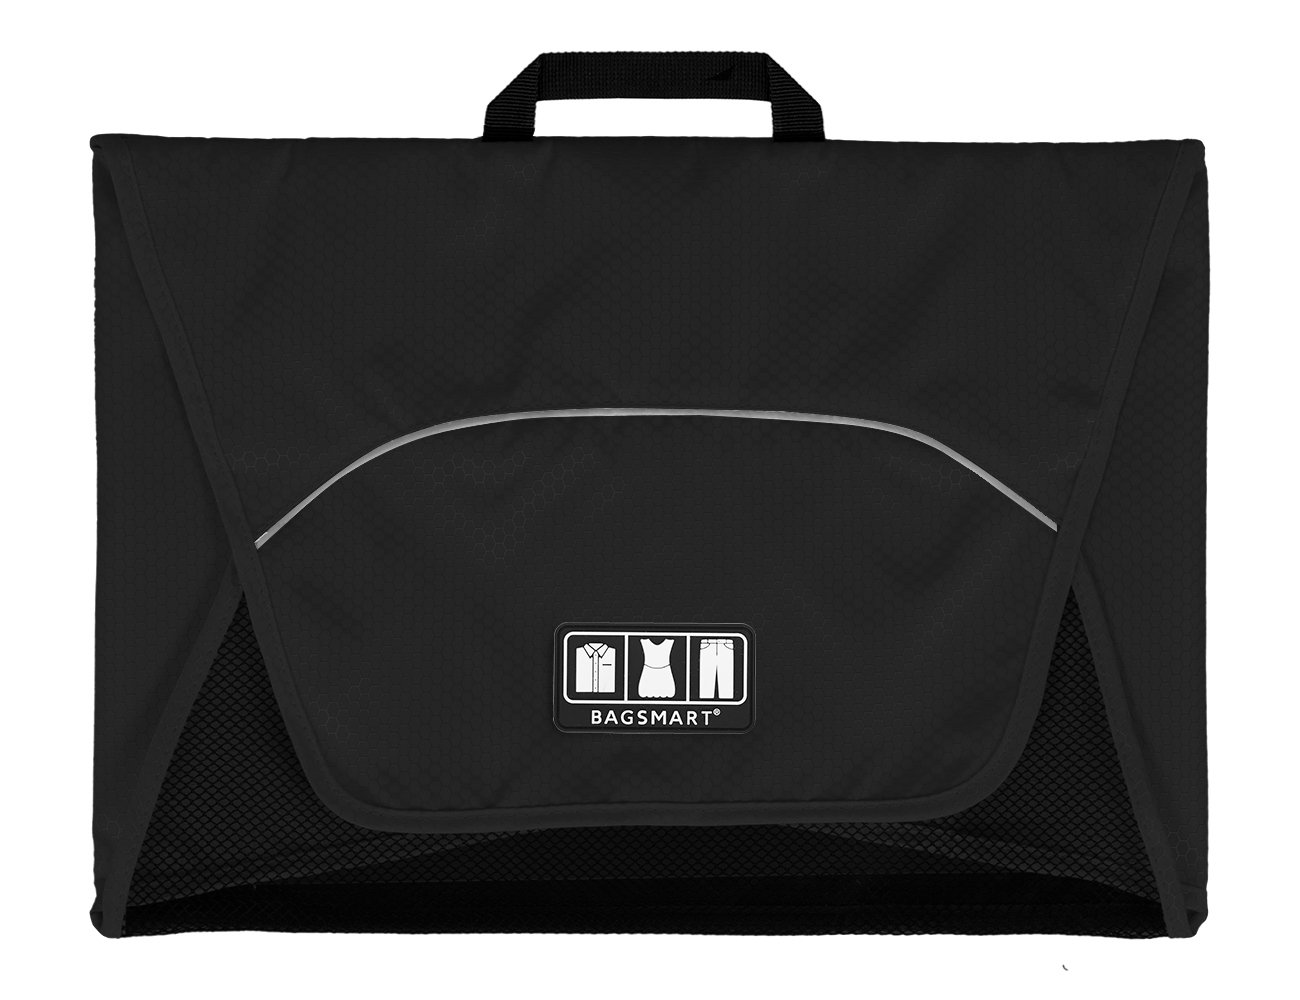 BAGSMART 17'' Packing Folder Anti-wrinkle Travel Garment Bag and Luggage Accessory, Black